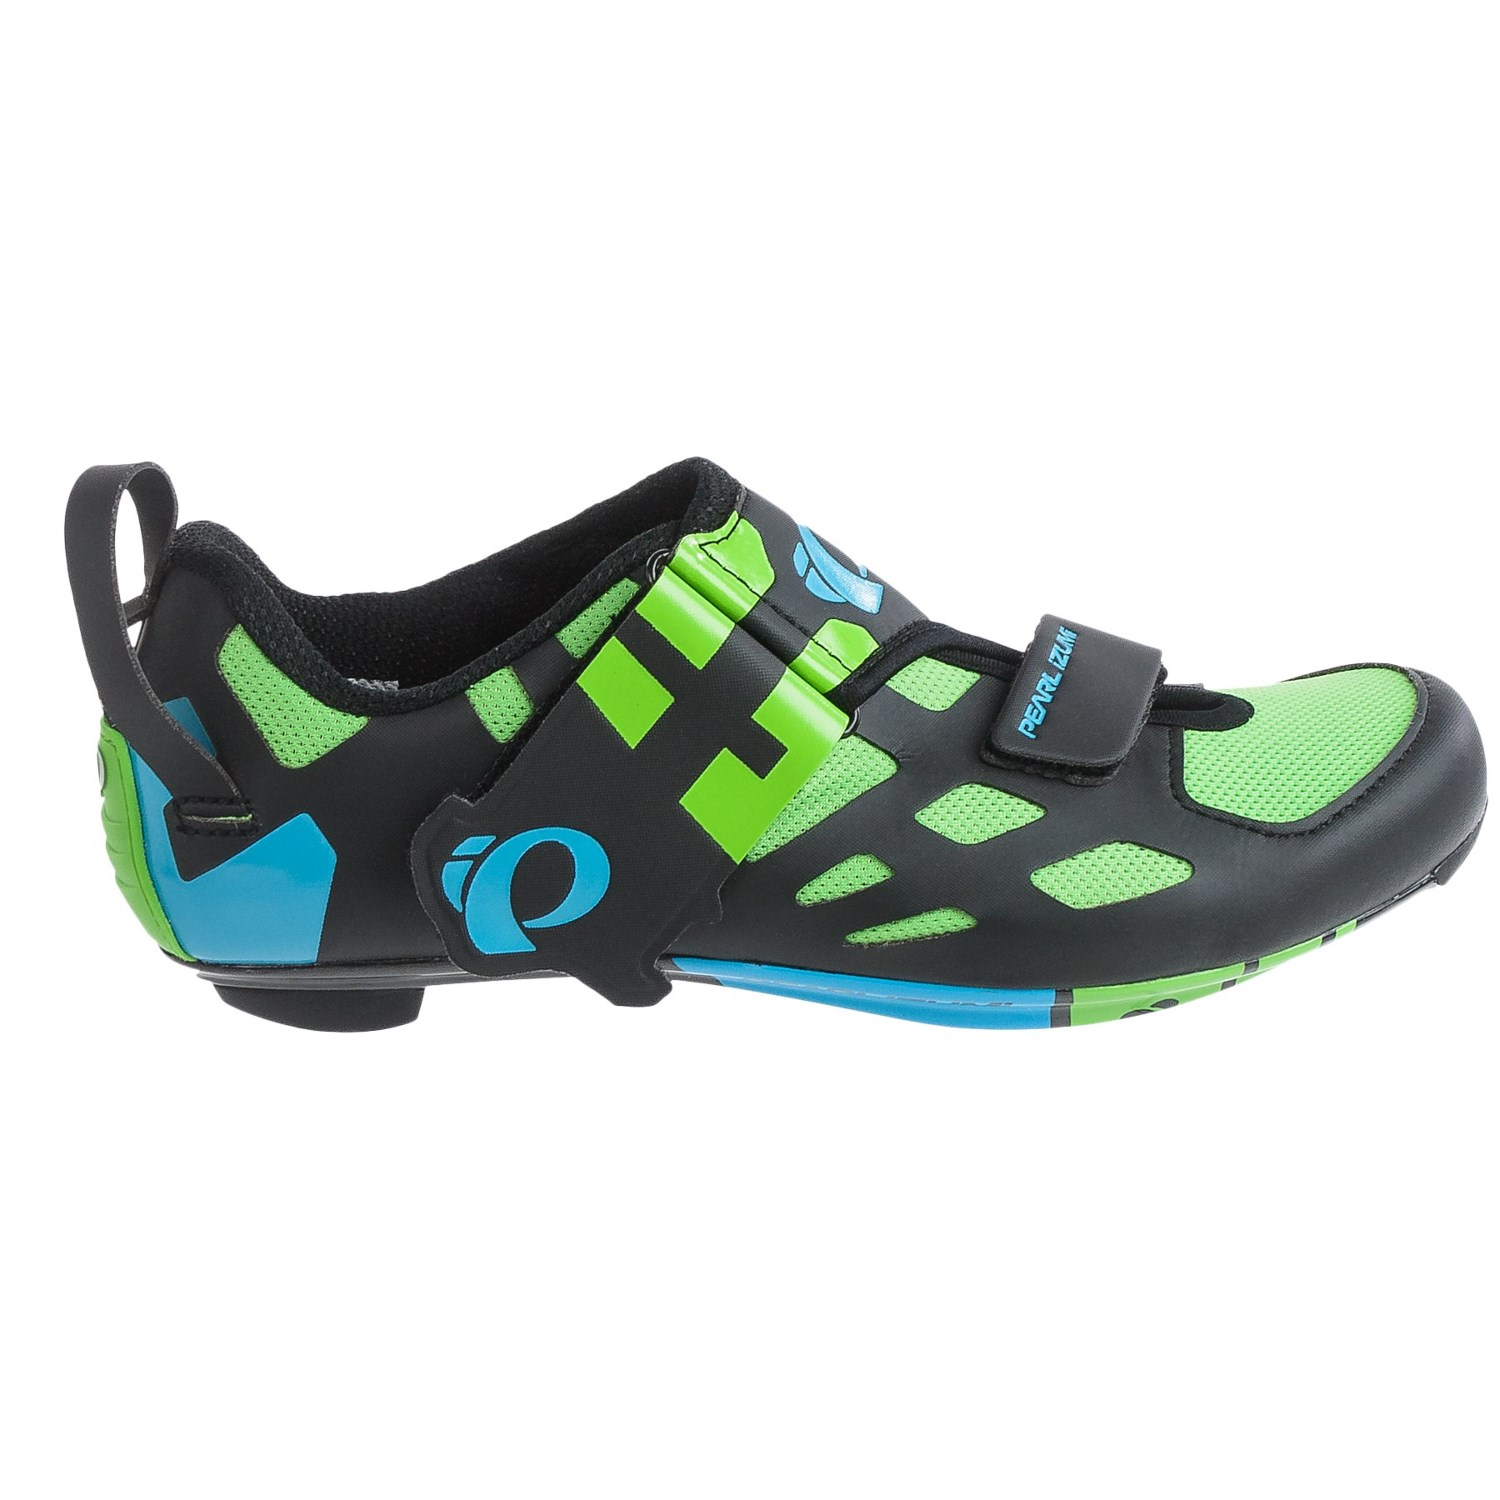 separation shoes 928bc 33c07 Pearl Izumi Tri Fly V Carbon Triathlon Cycling Shoes - 3-Hole (For Men)